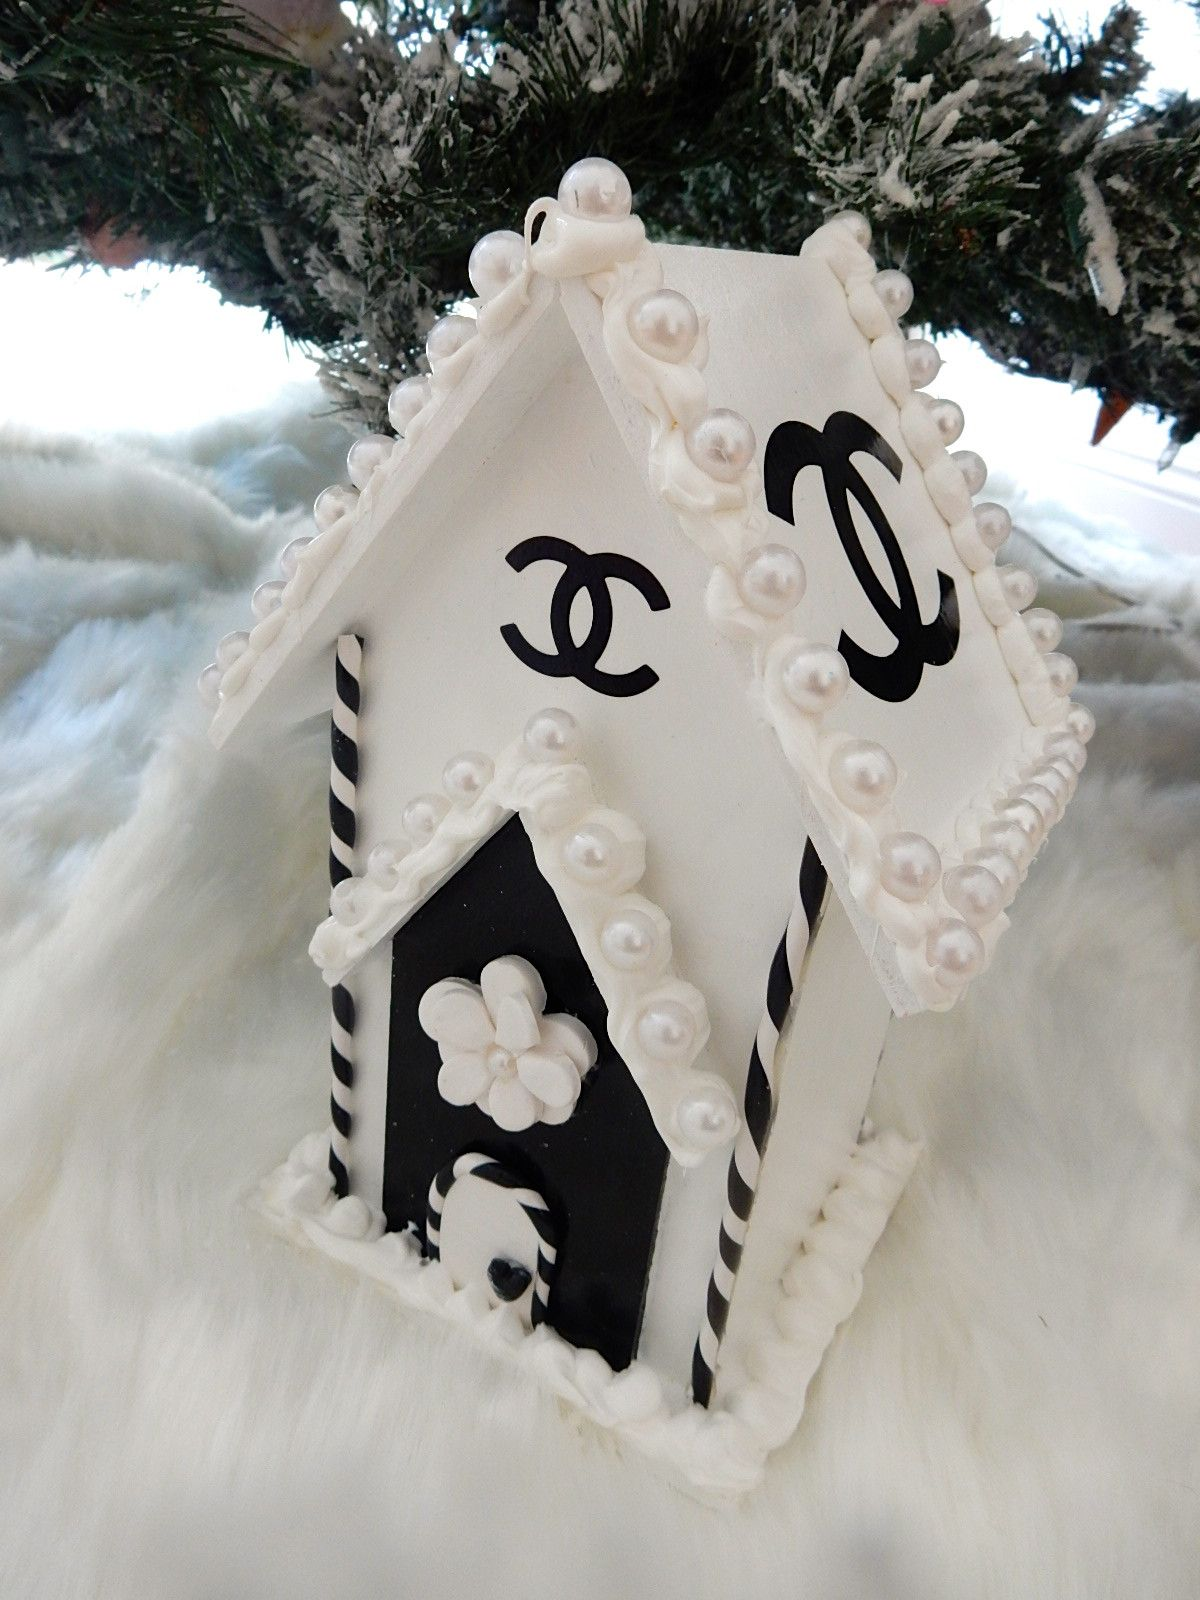 Chanel inspired wood house of chanel christmas display ornament 9